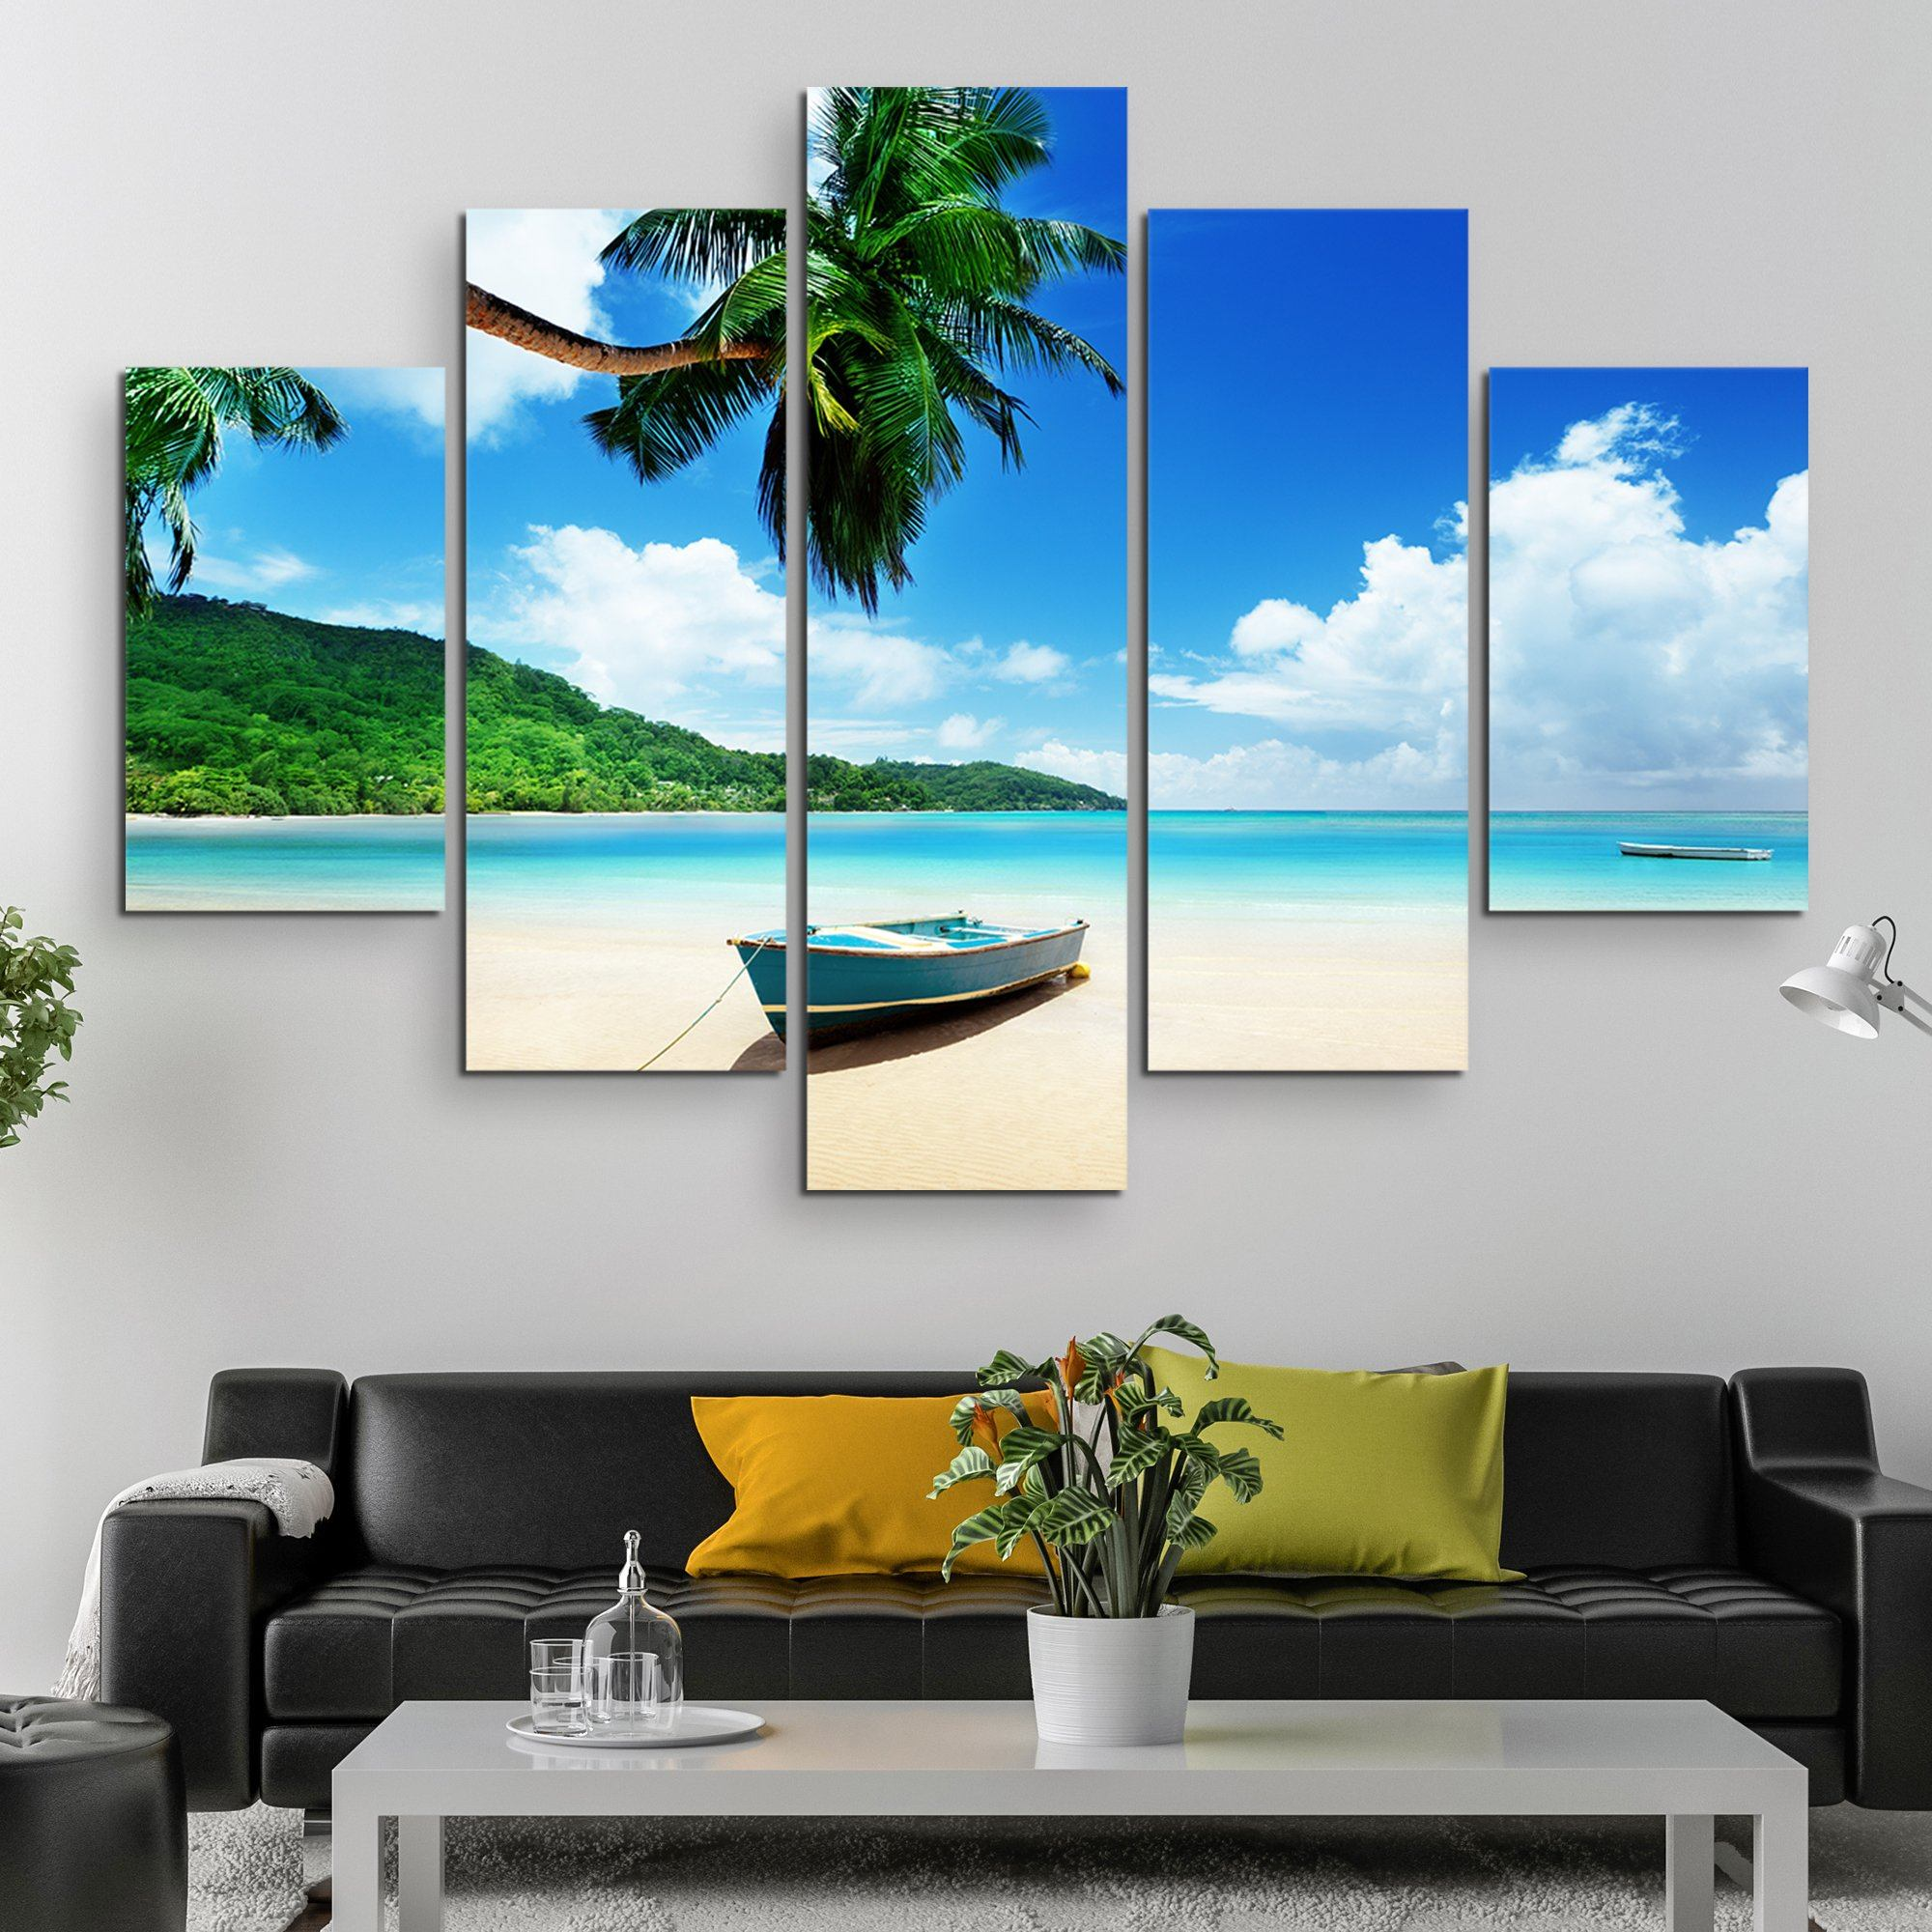 5 piece Boat on Mahe Island wall art